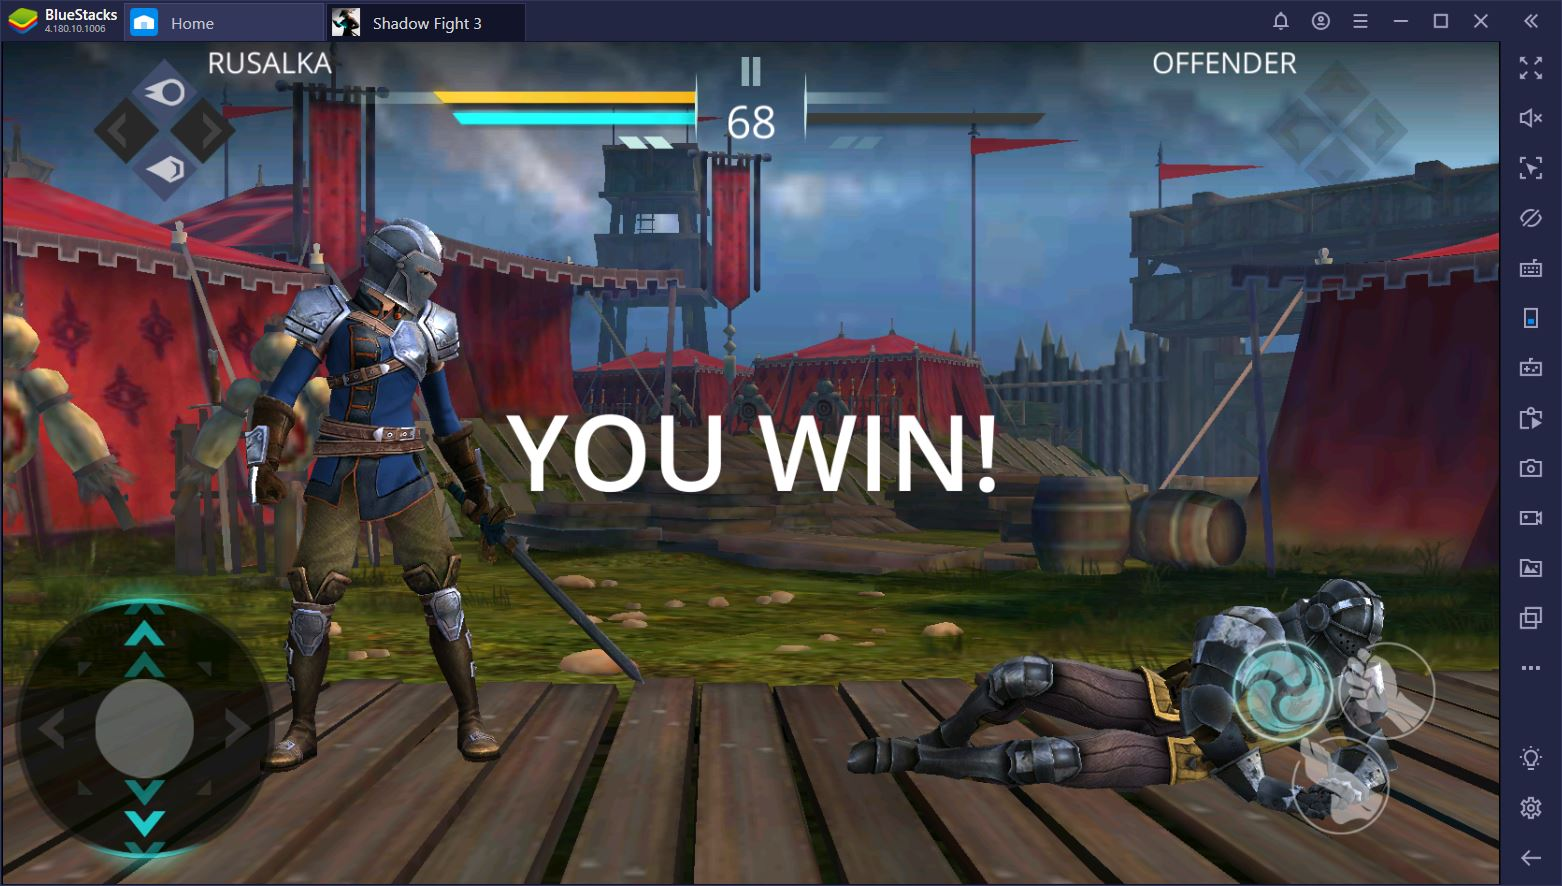 Shadow Fight 3 on PC: Tips and Tricks for Beginners